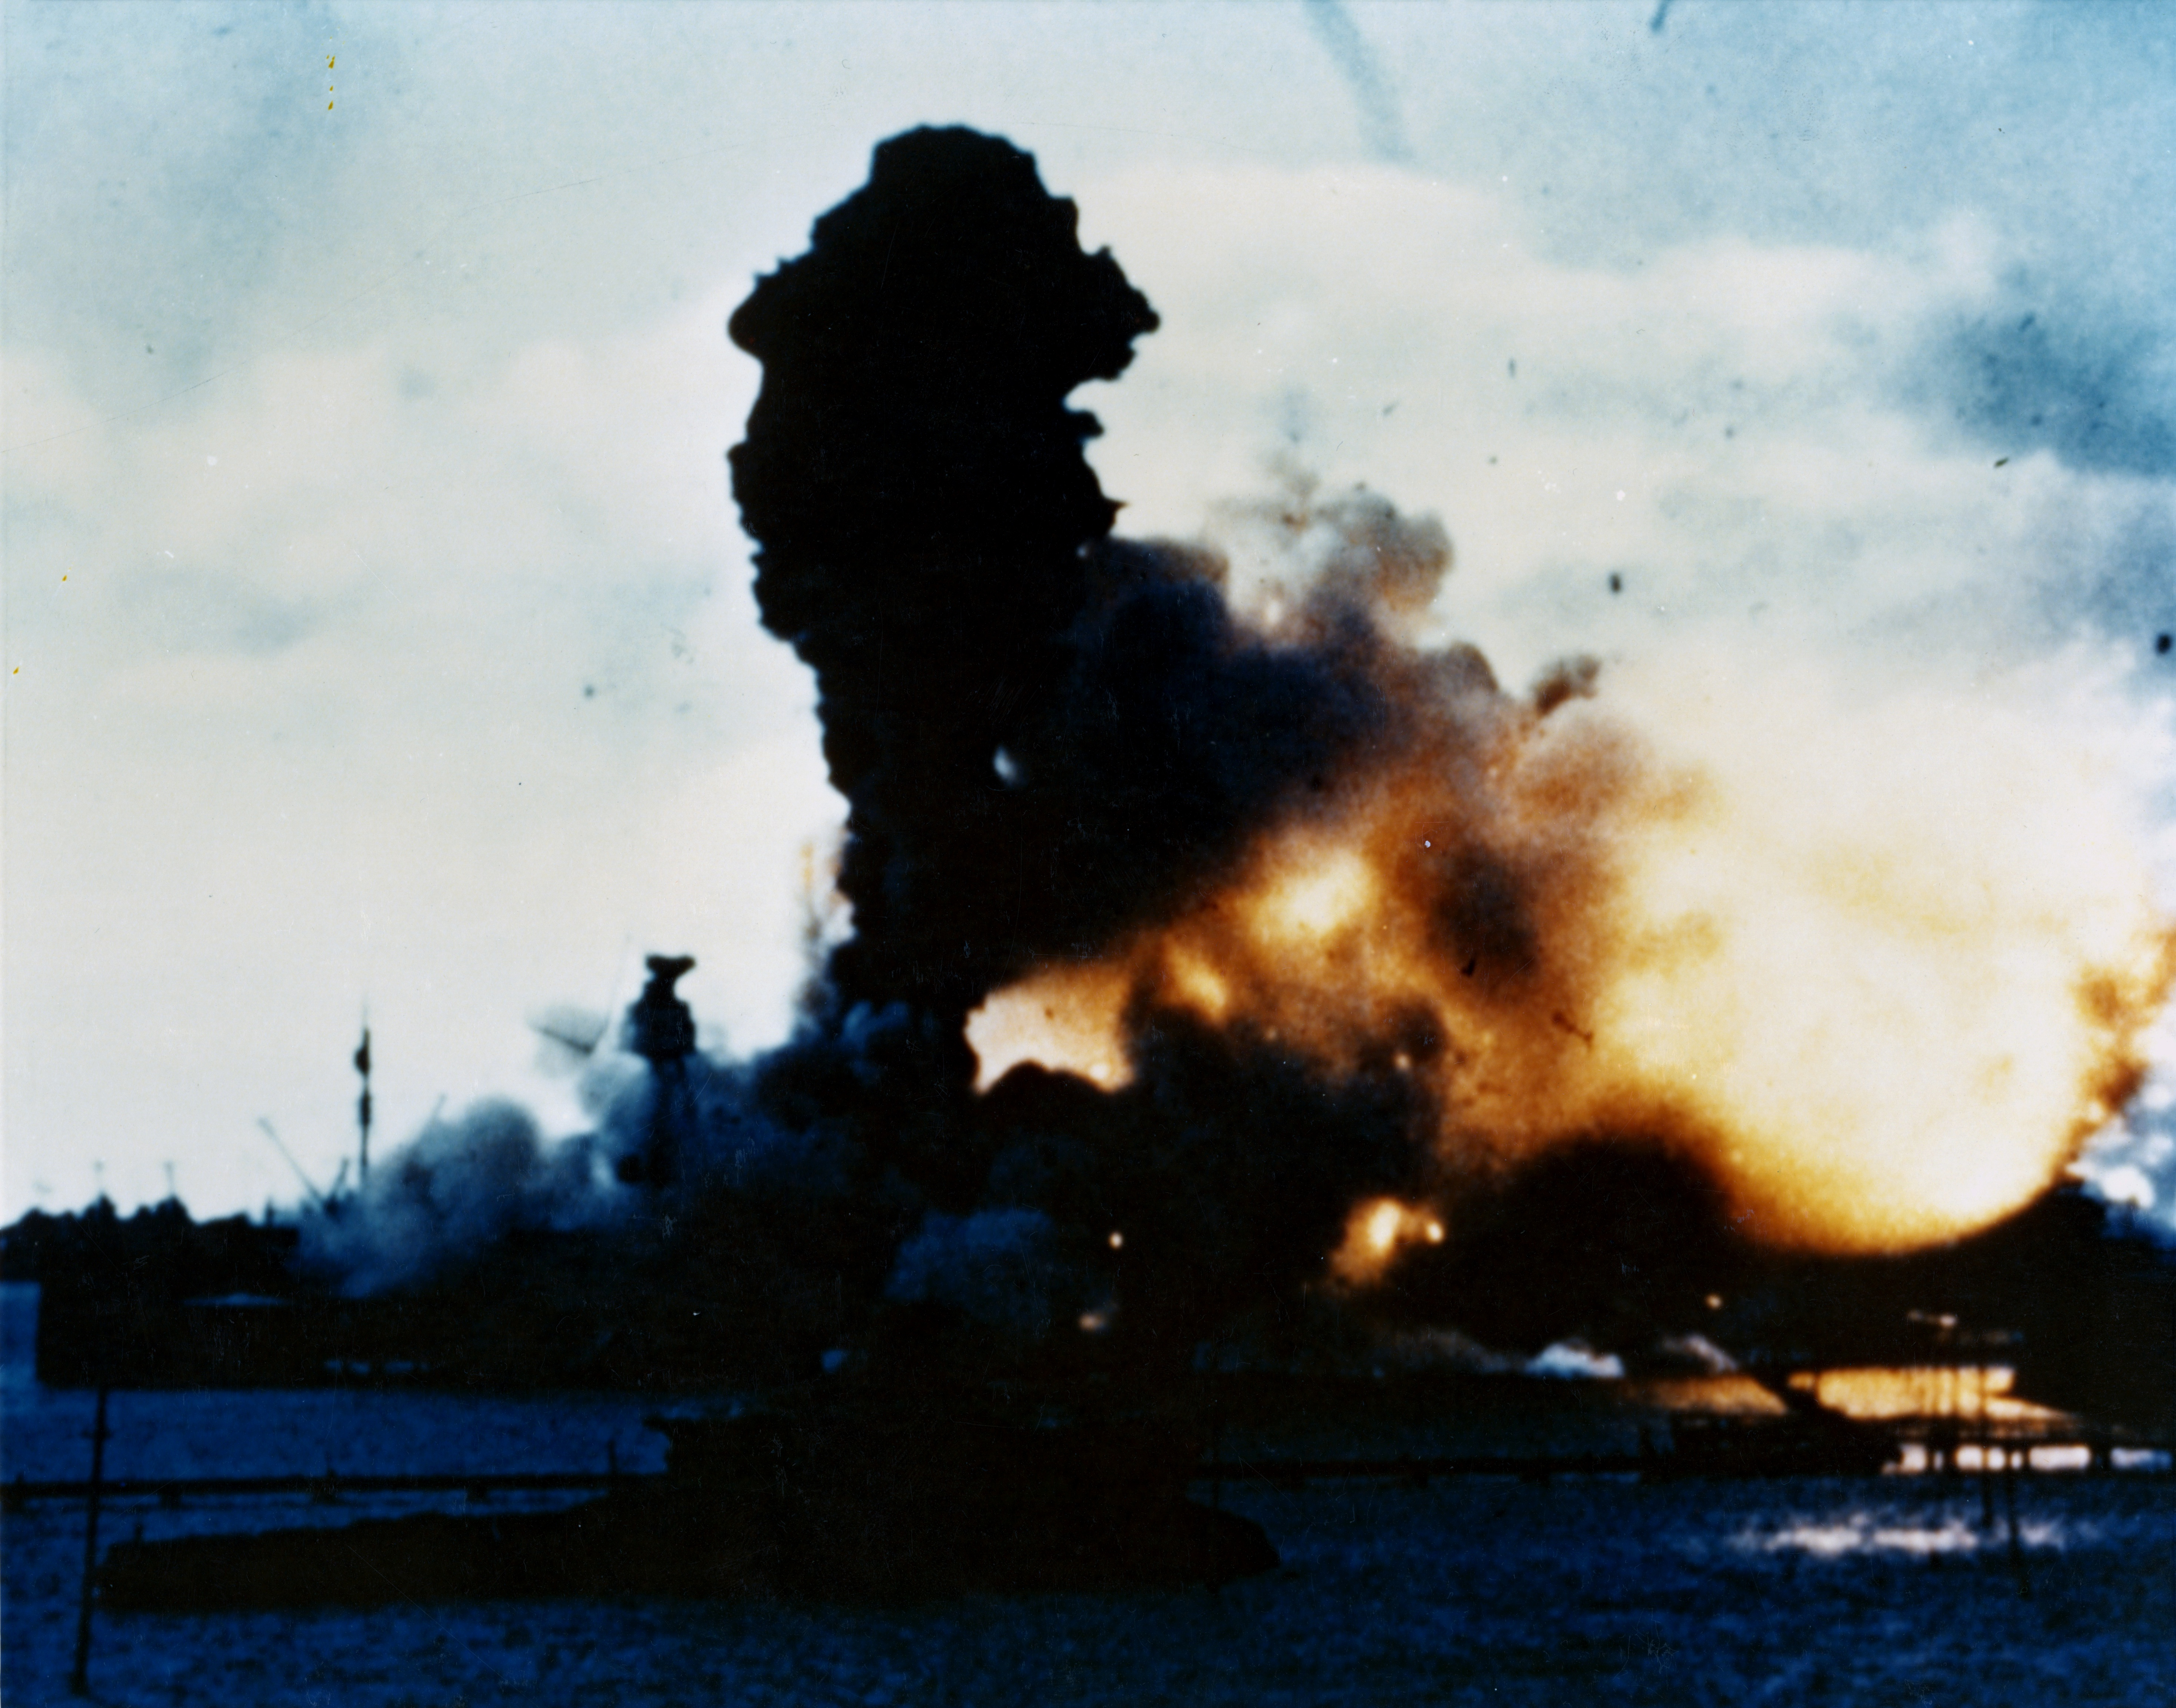 The forward magazines of the U.S. Navy battleship USS Arizona (BB-39) explode shortly after 08:00 hrs during the Japanese attack on Pearl Harbor, Hawaii (USA), 7 December 1941.